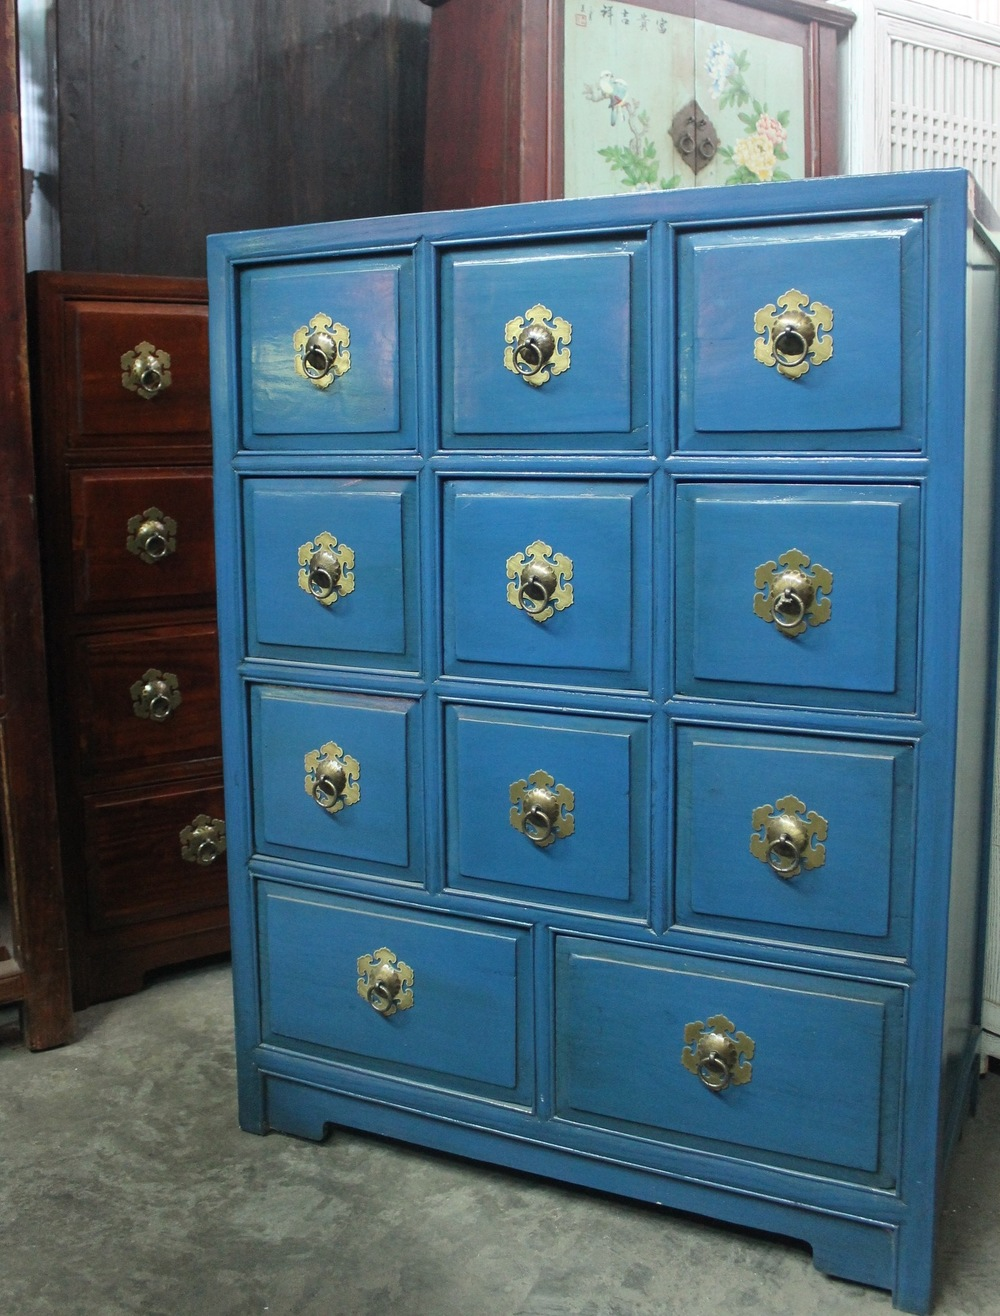 CD cabinets, available in blue, brown and dirty white. Now on sale at S$650.00. SOLD